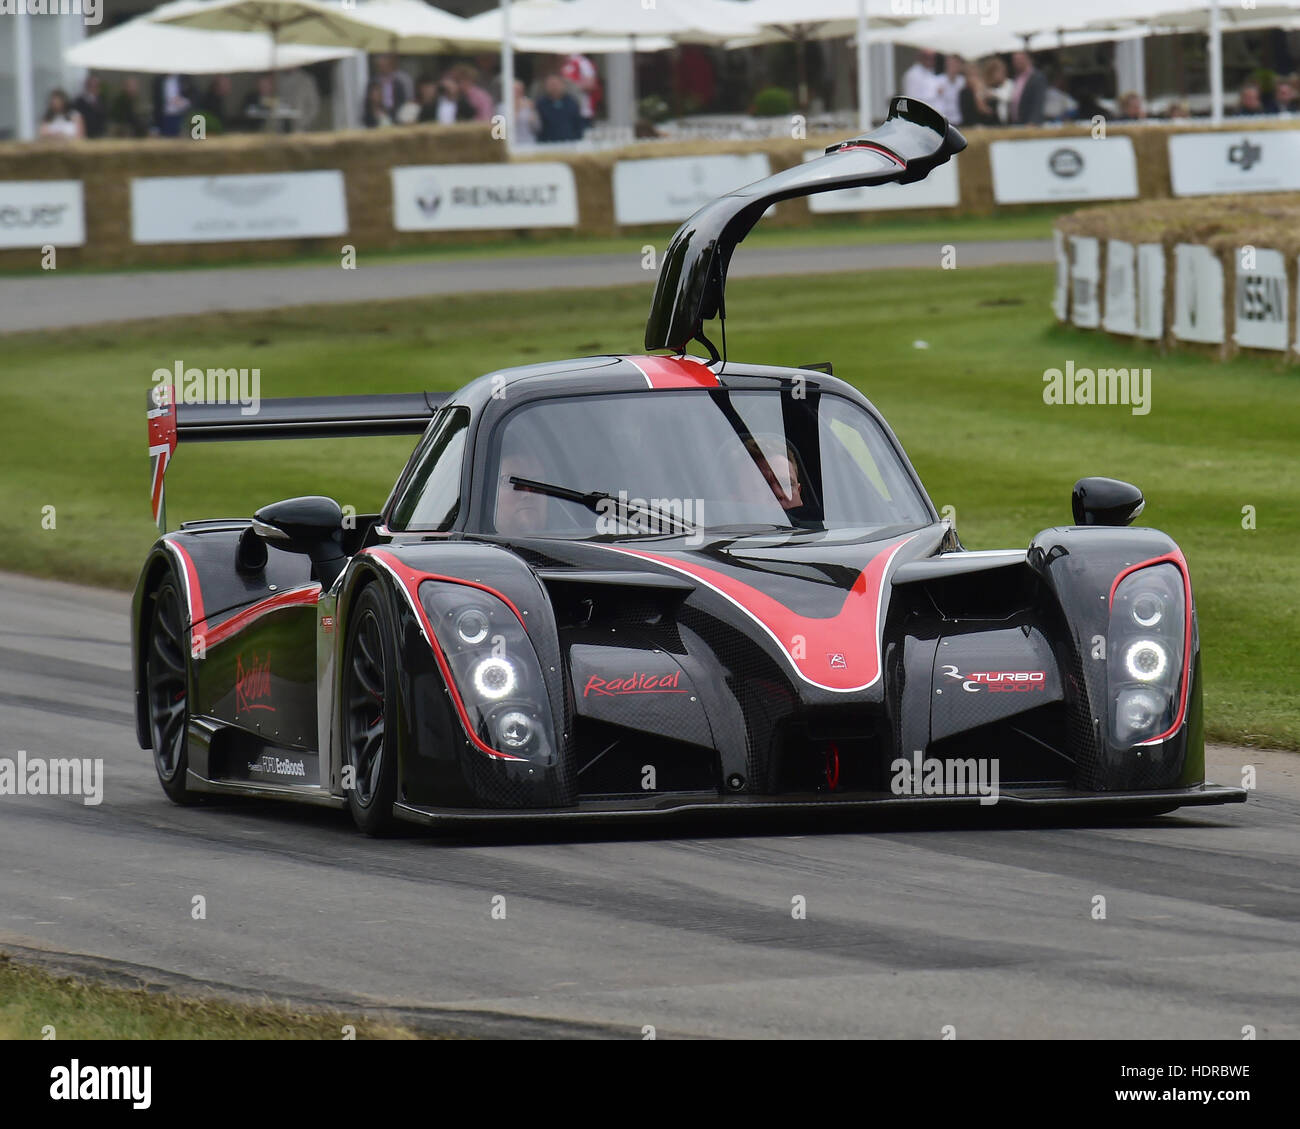 Radical RXC Turbo, Goodwood Festival of Speed, 2016. automobiles, cars, entertainment, Festival of Speed, FoS, Full - Stock Image